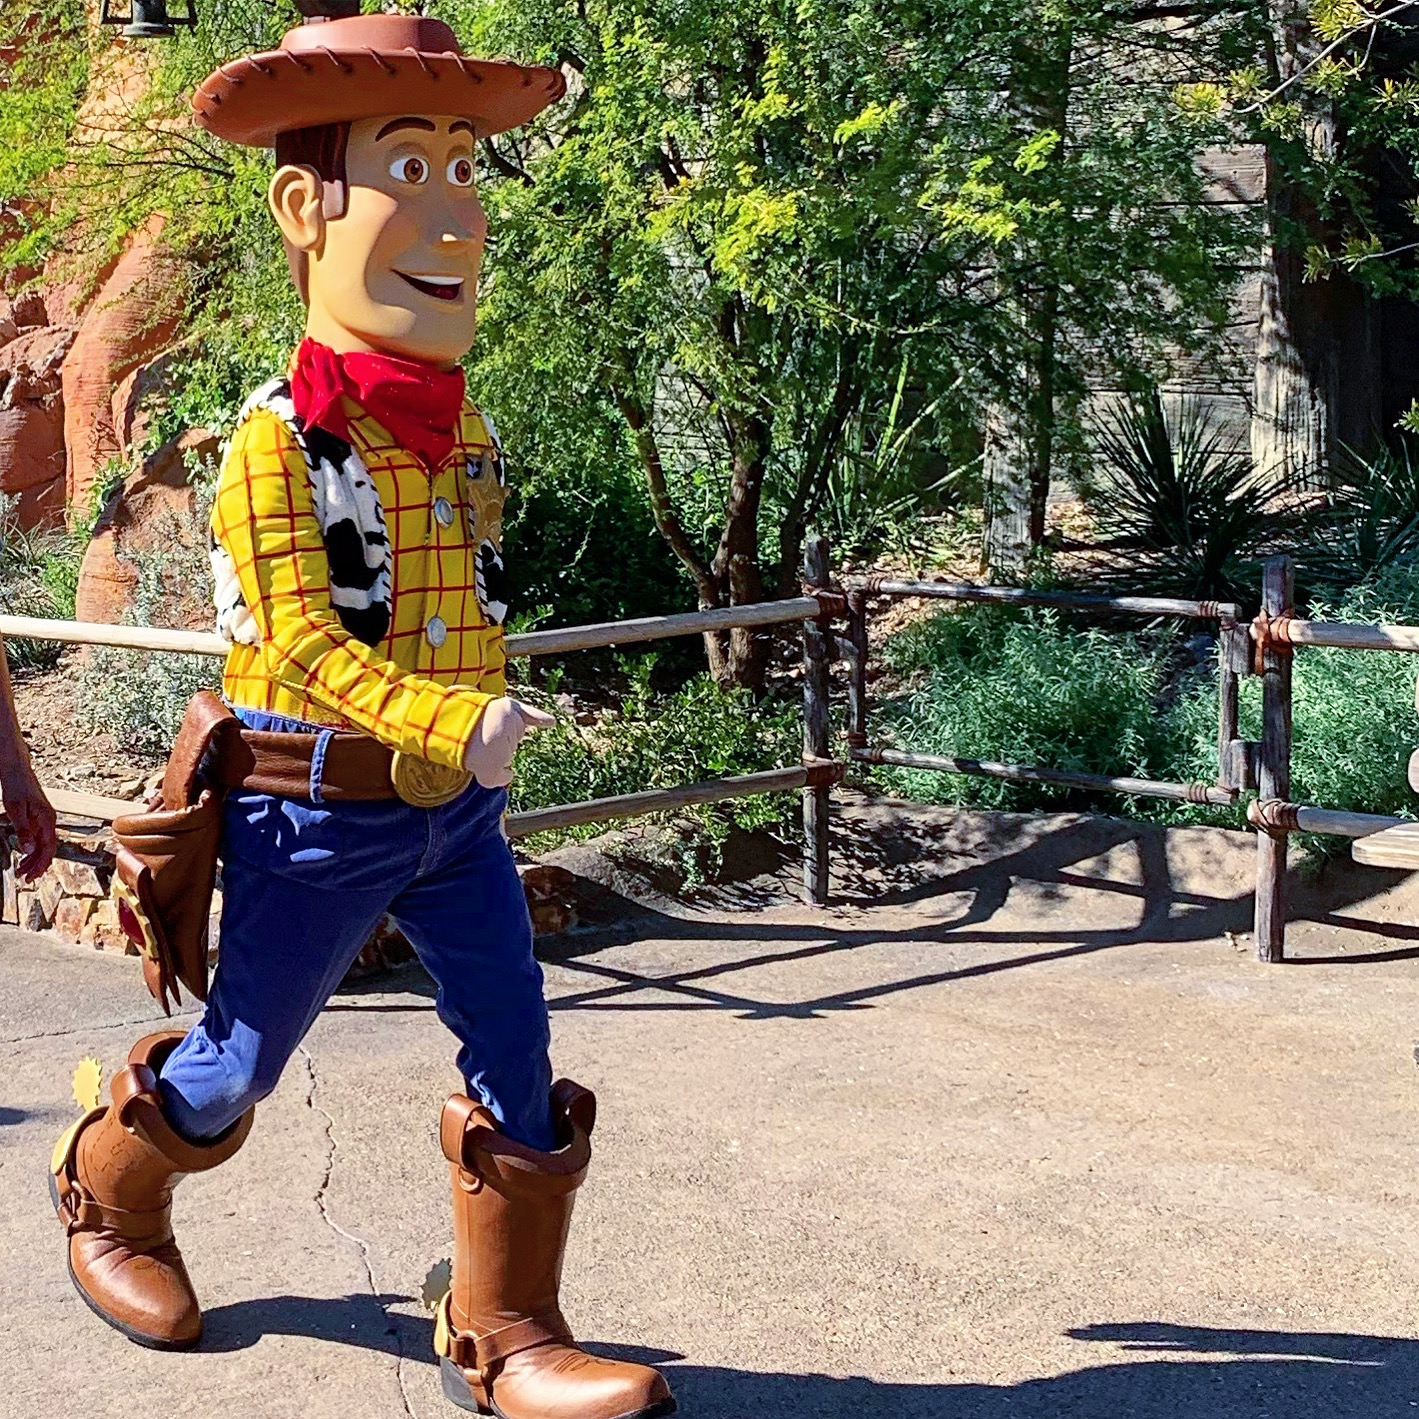 Woody walking on the streets of Disneyland Anaheim California